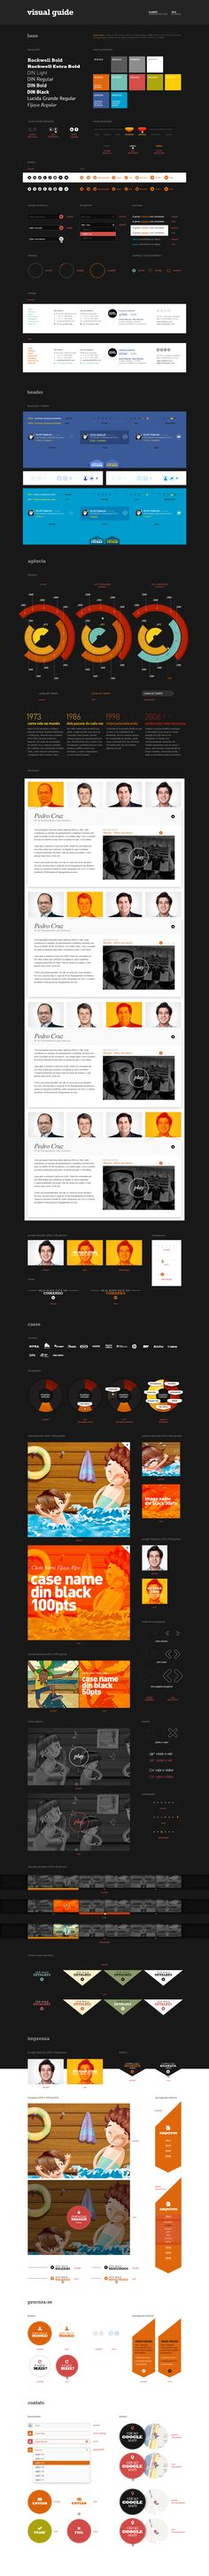 Great color and interface elements Web Style Guide, Style Guides, Design Guidelines, Brand Guidelines, Web Layout, Business Intelligence, Game Design, Plan Design, Apps